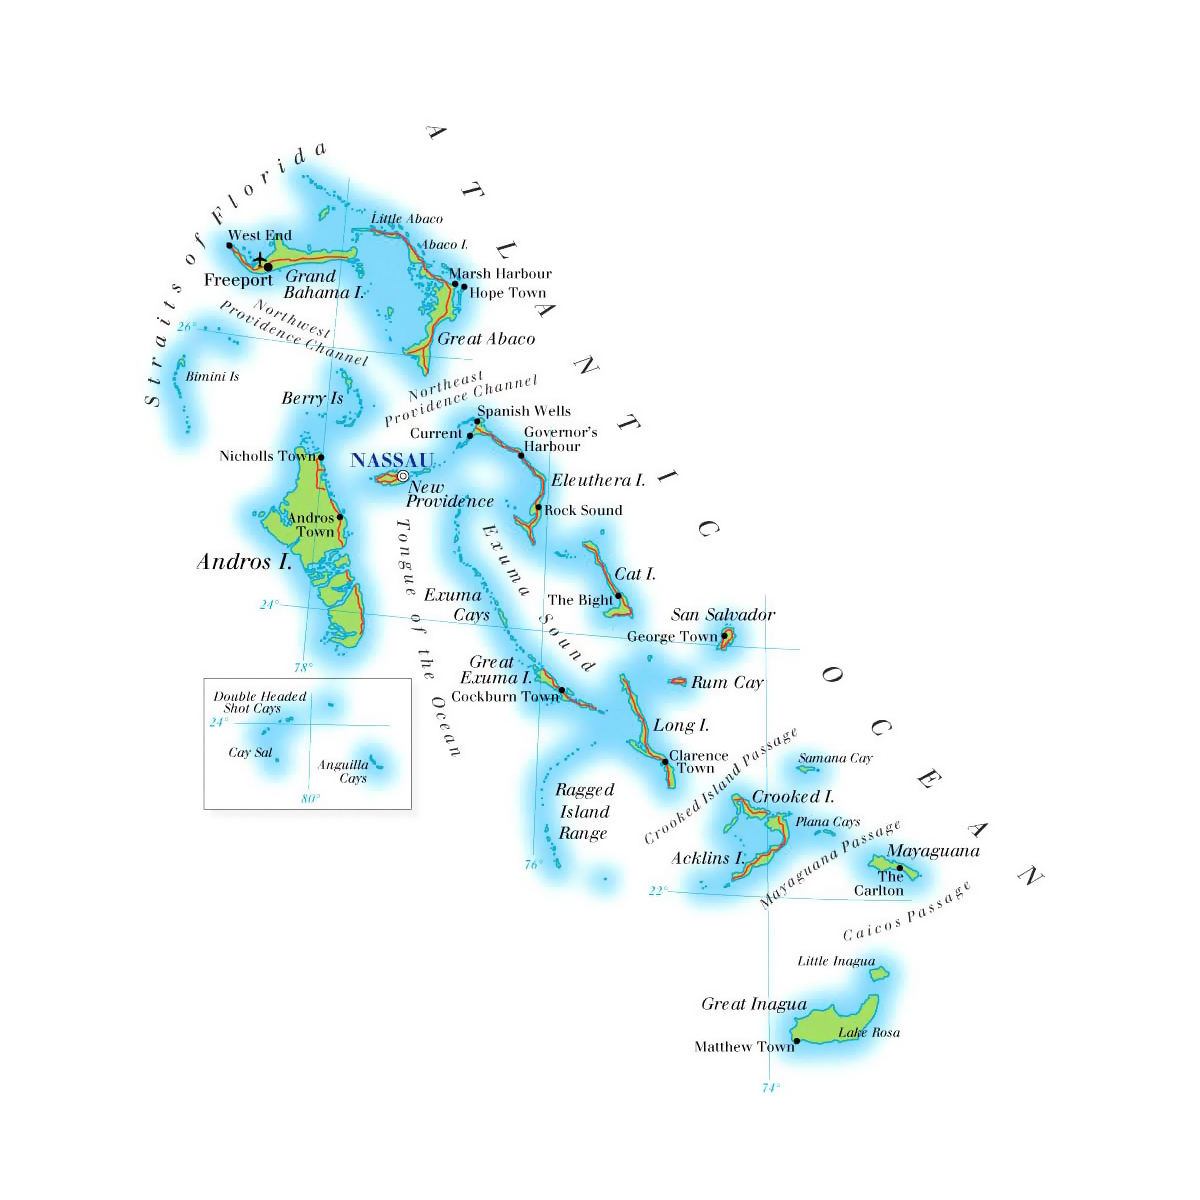 Bahamas Elevation Map.Detailed Elevation Map Of Bahamas With Roads Cities And Airports